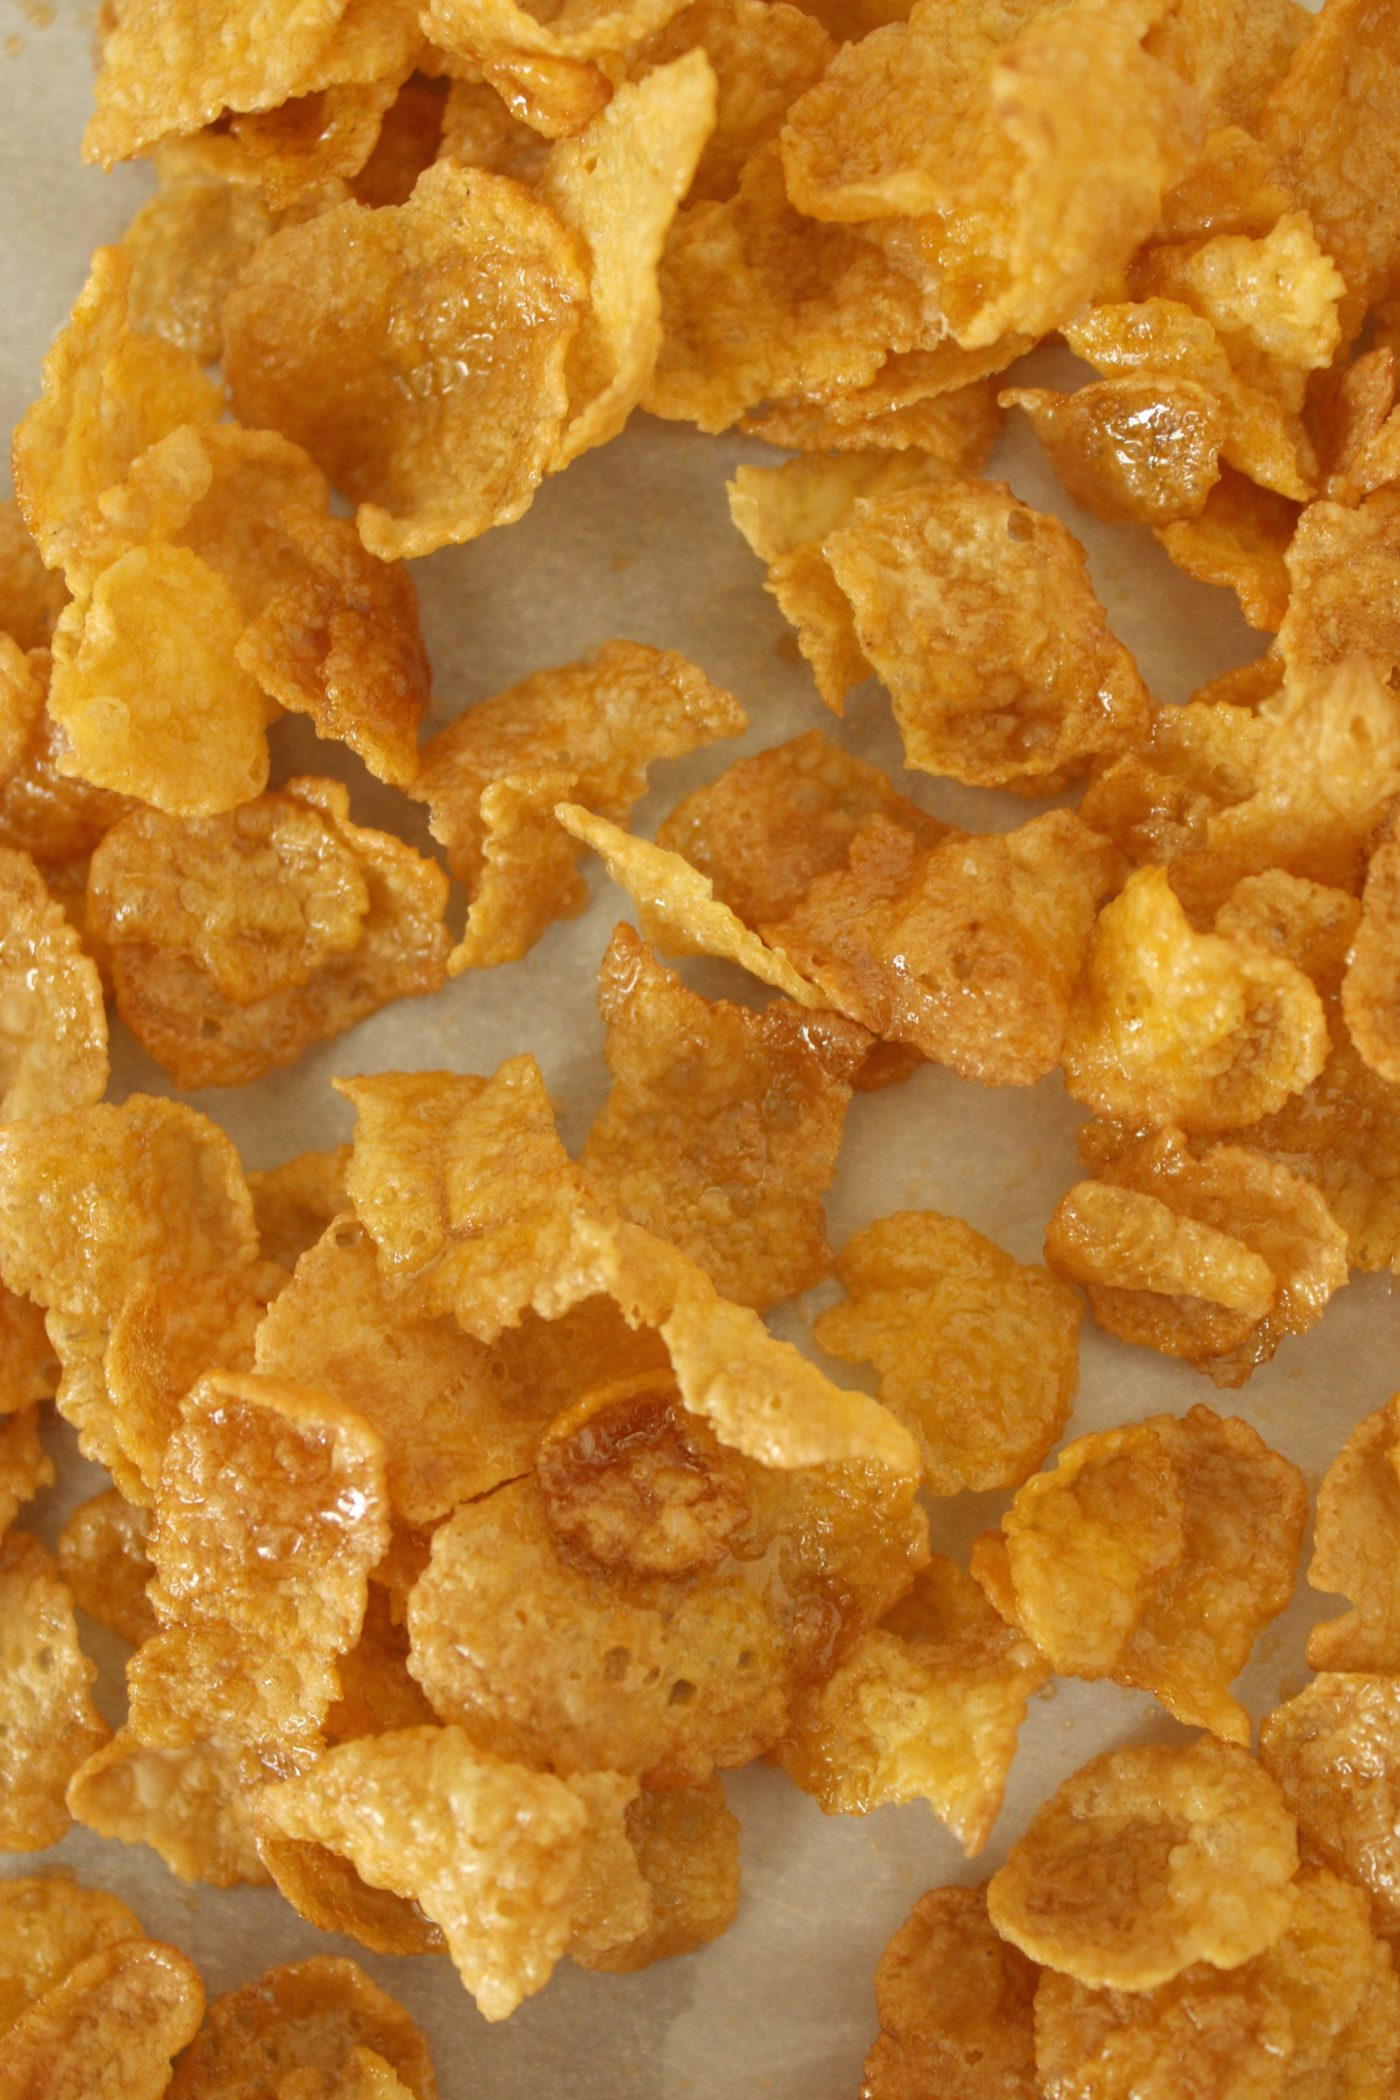 Maple glazed corn flakes from Whip it Up cookbook